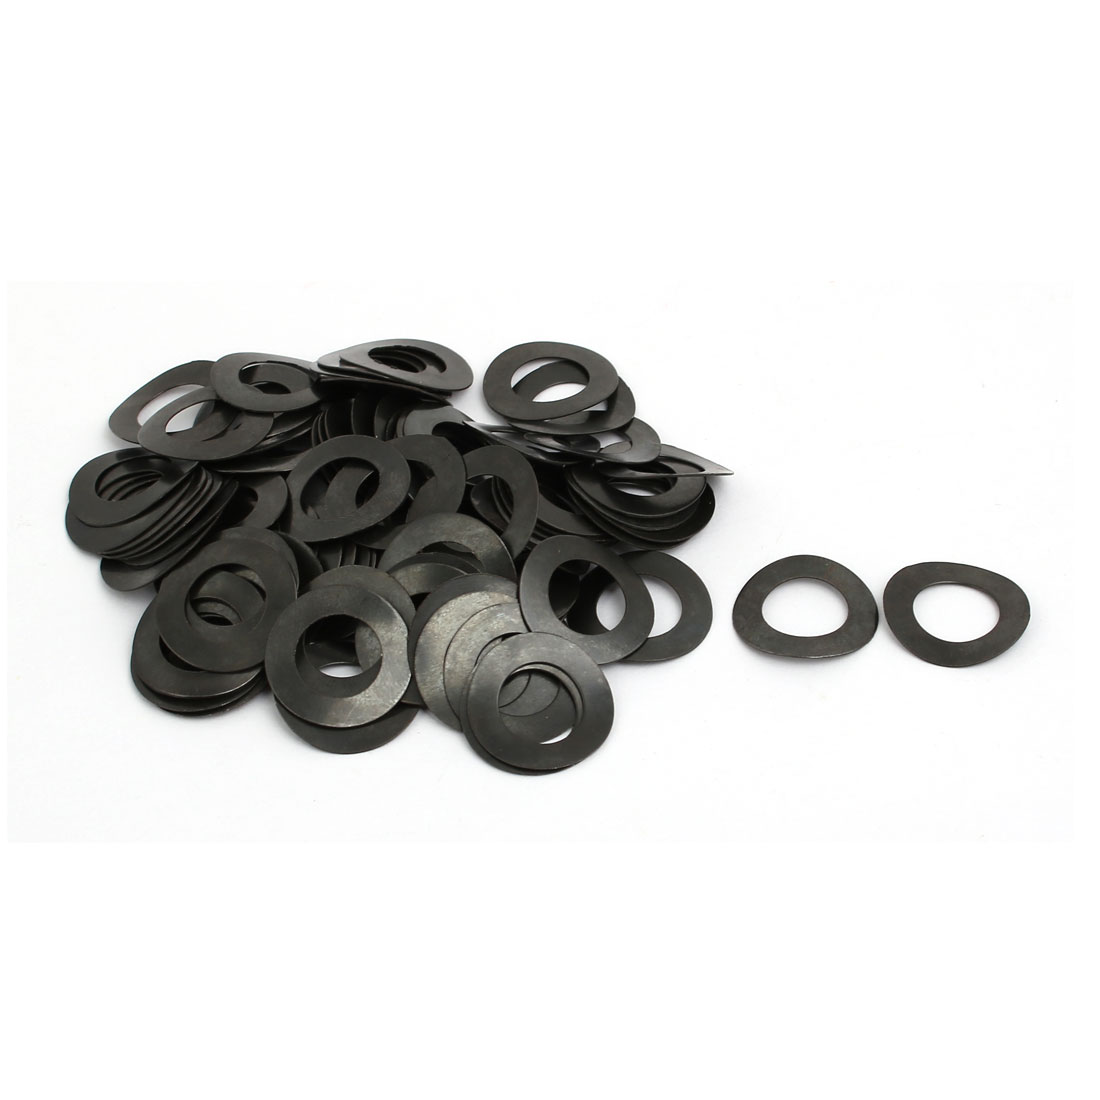 10mm Fitting Dia 0.6mm Thickness Carbon Steel Curved Spring Washer 100pcs